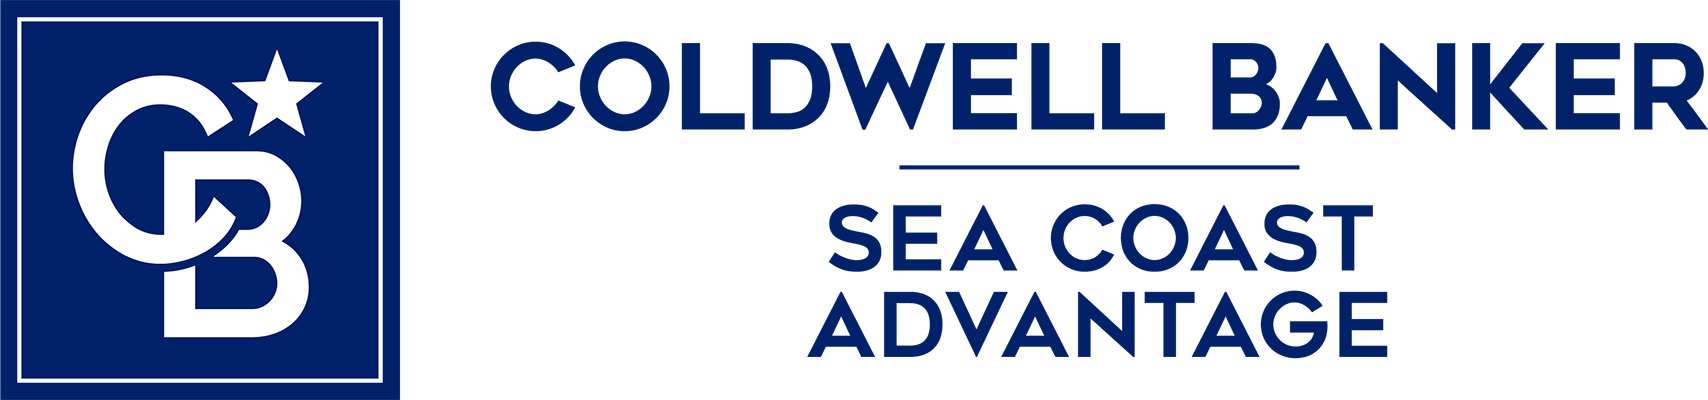 Paul Hope - Coldwell Banker Sea Coast Advantage Realty Logo